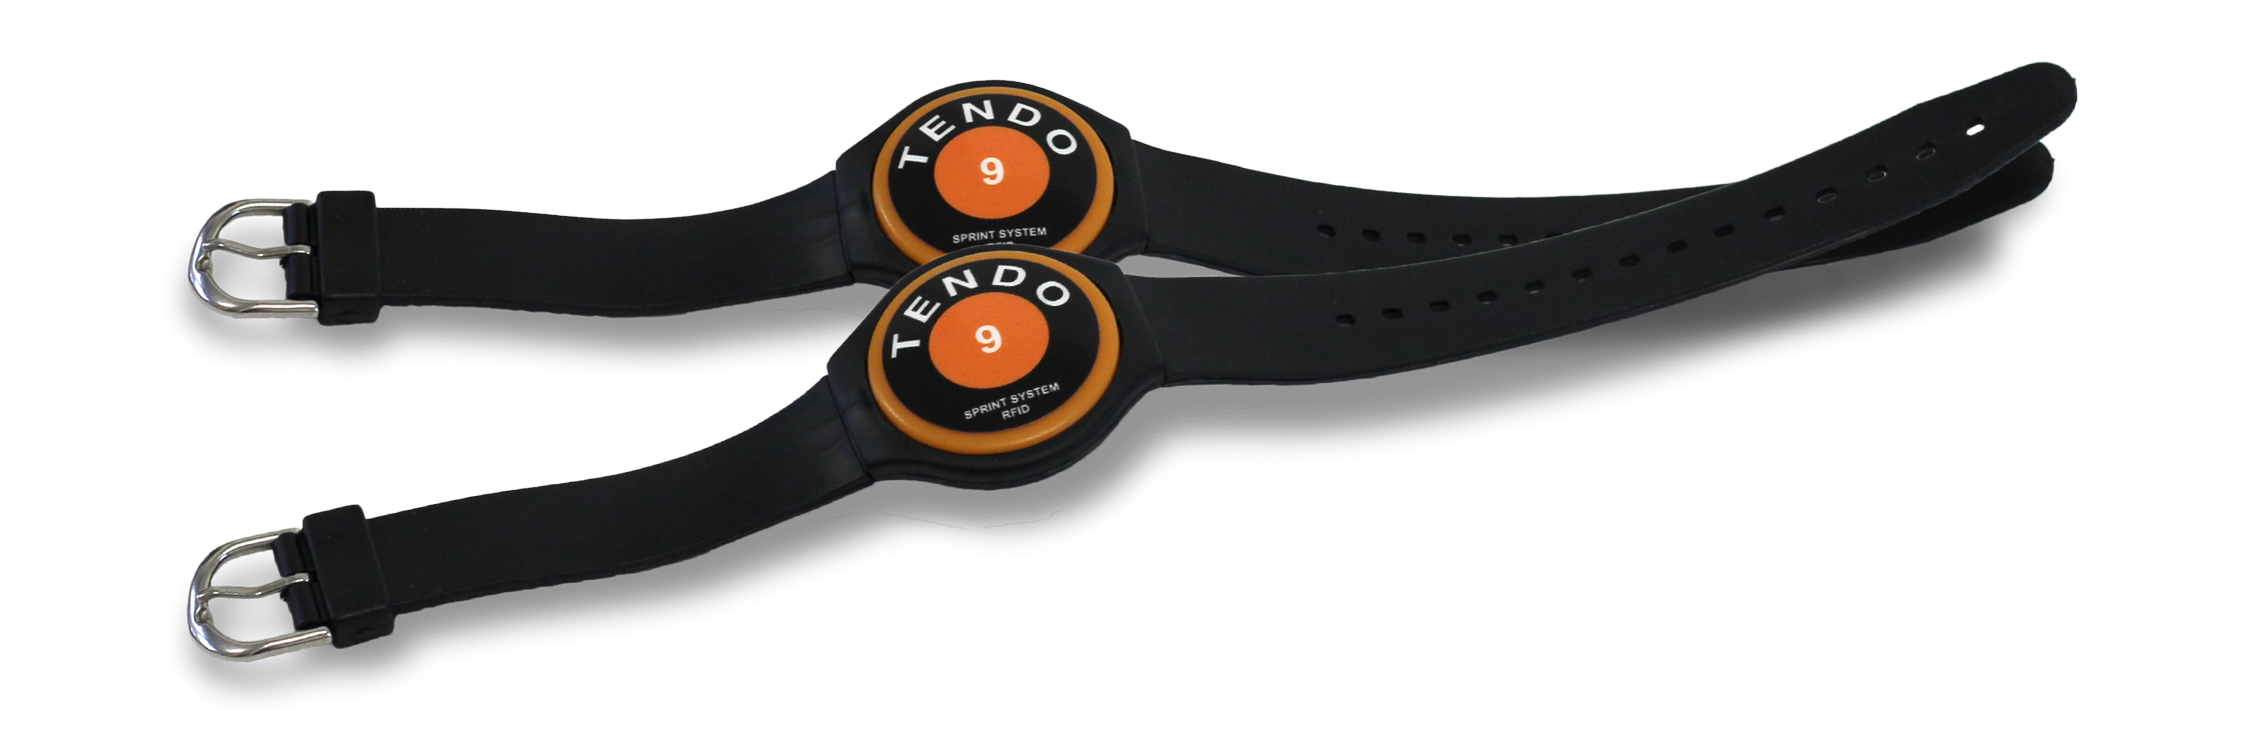 Two Tendo Sprint System RFID wrist bands for automatic recognition of athletes in training and testing by Tendo Sport